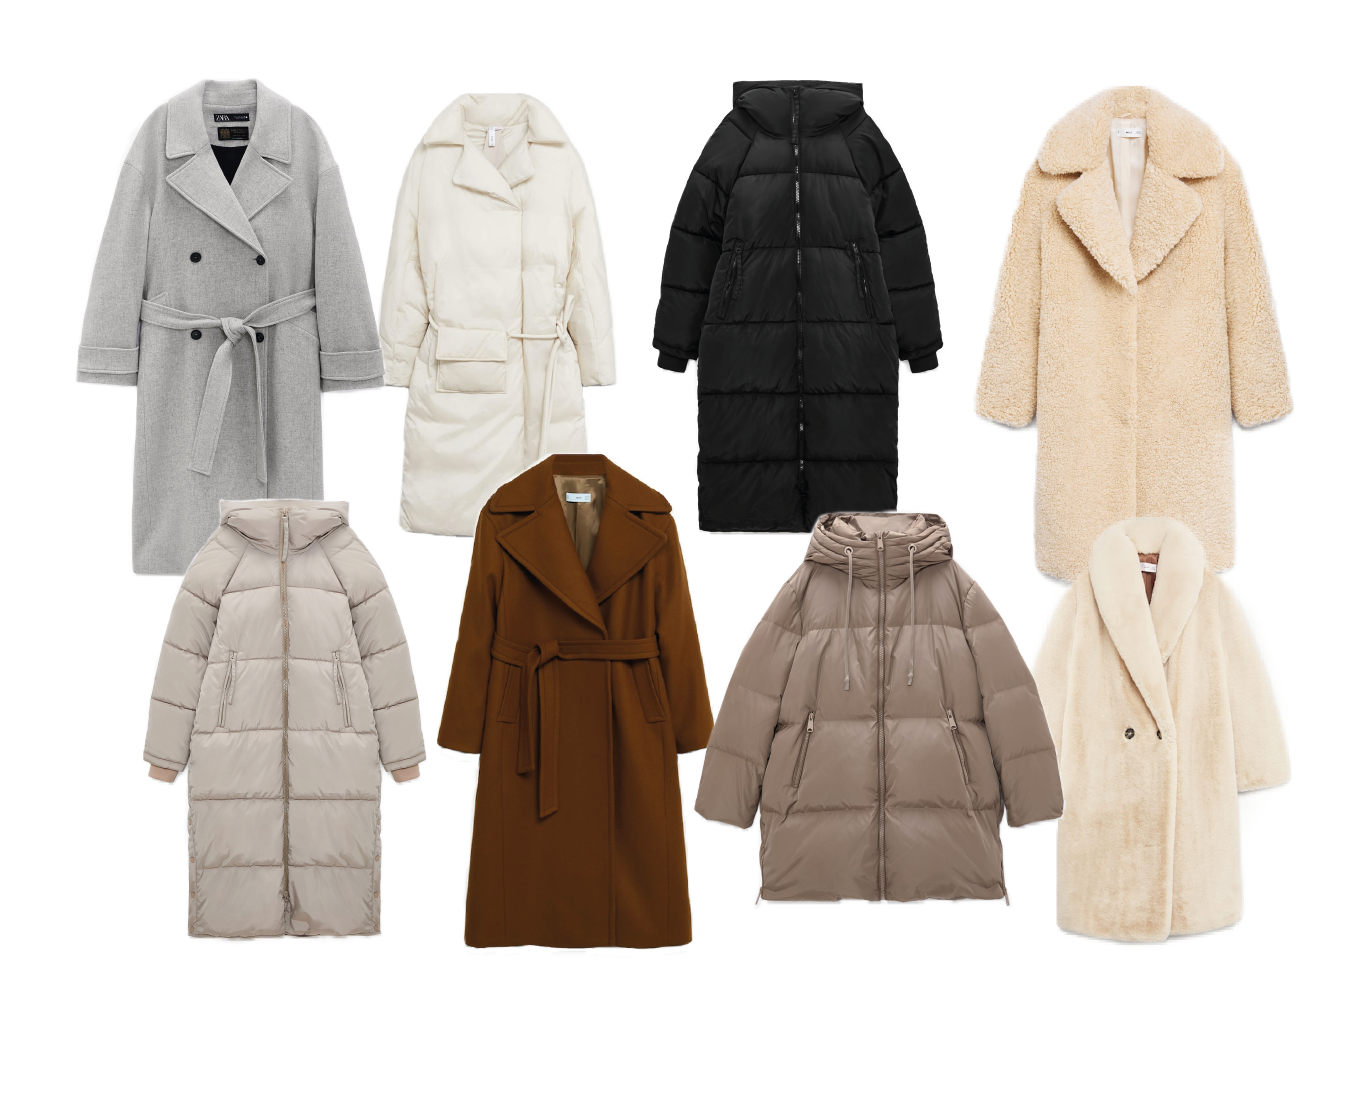 WINTER OUTERWEAR FAVS TO SHOP